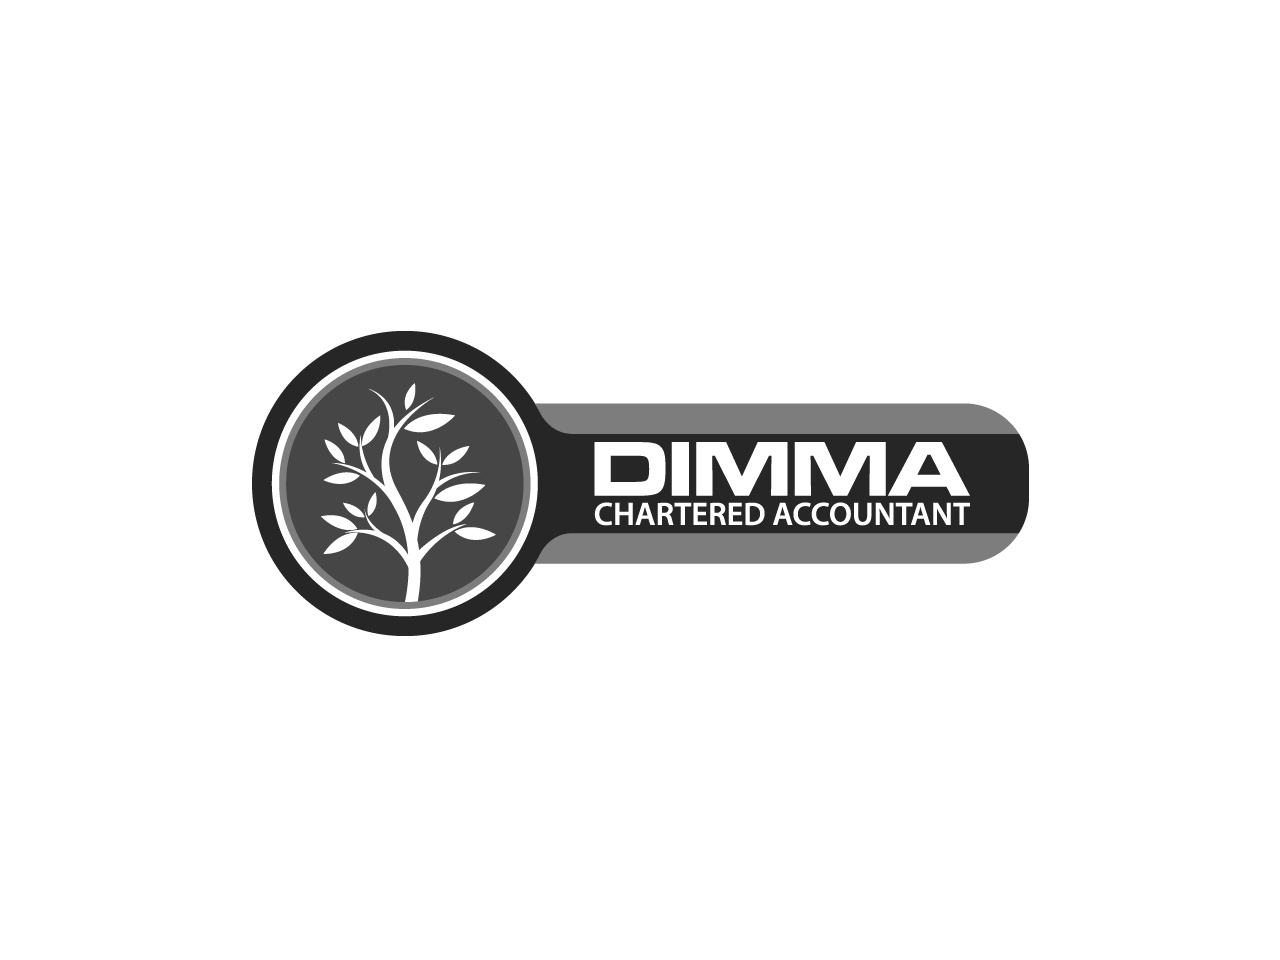 Logo Design by jpbituin - Entry No. 113 in the Logo Design Contest Creative Logo Design for Dimma Chartered Accountant.